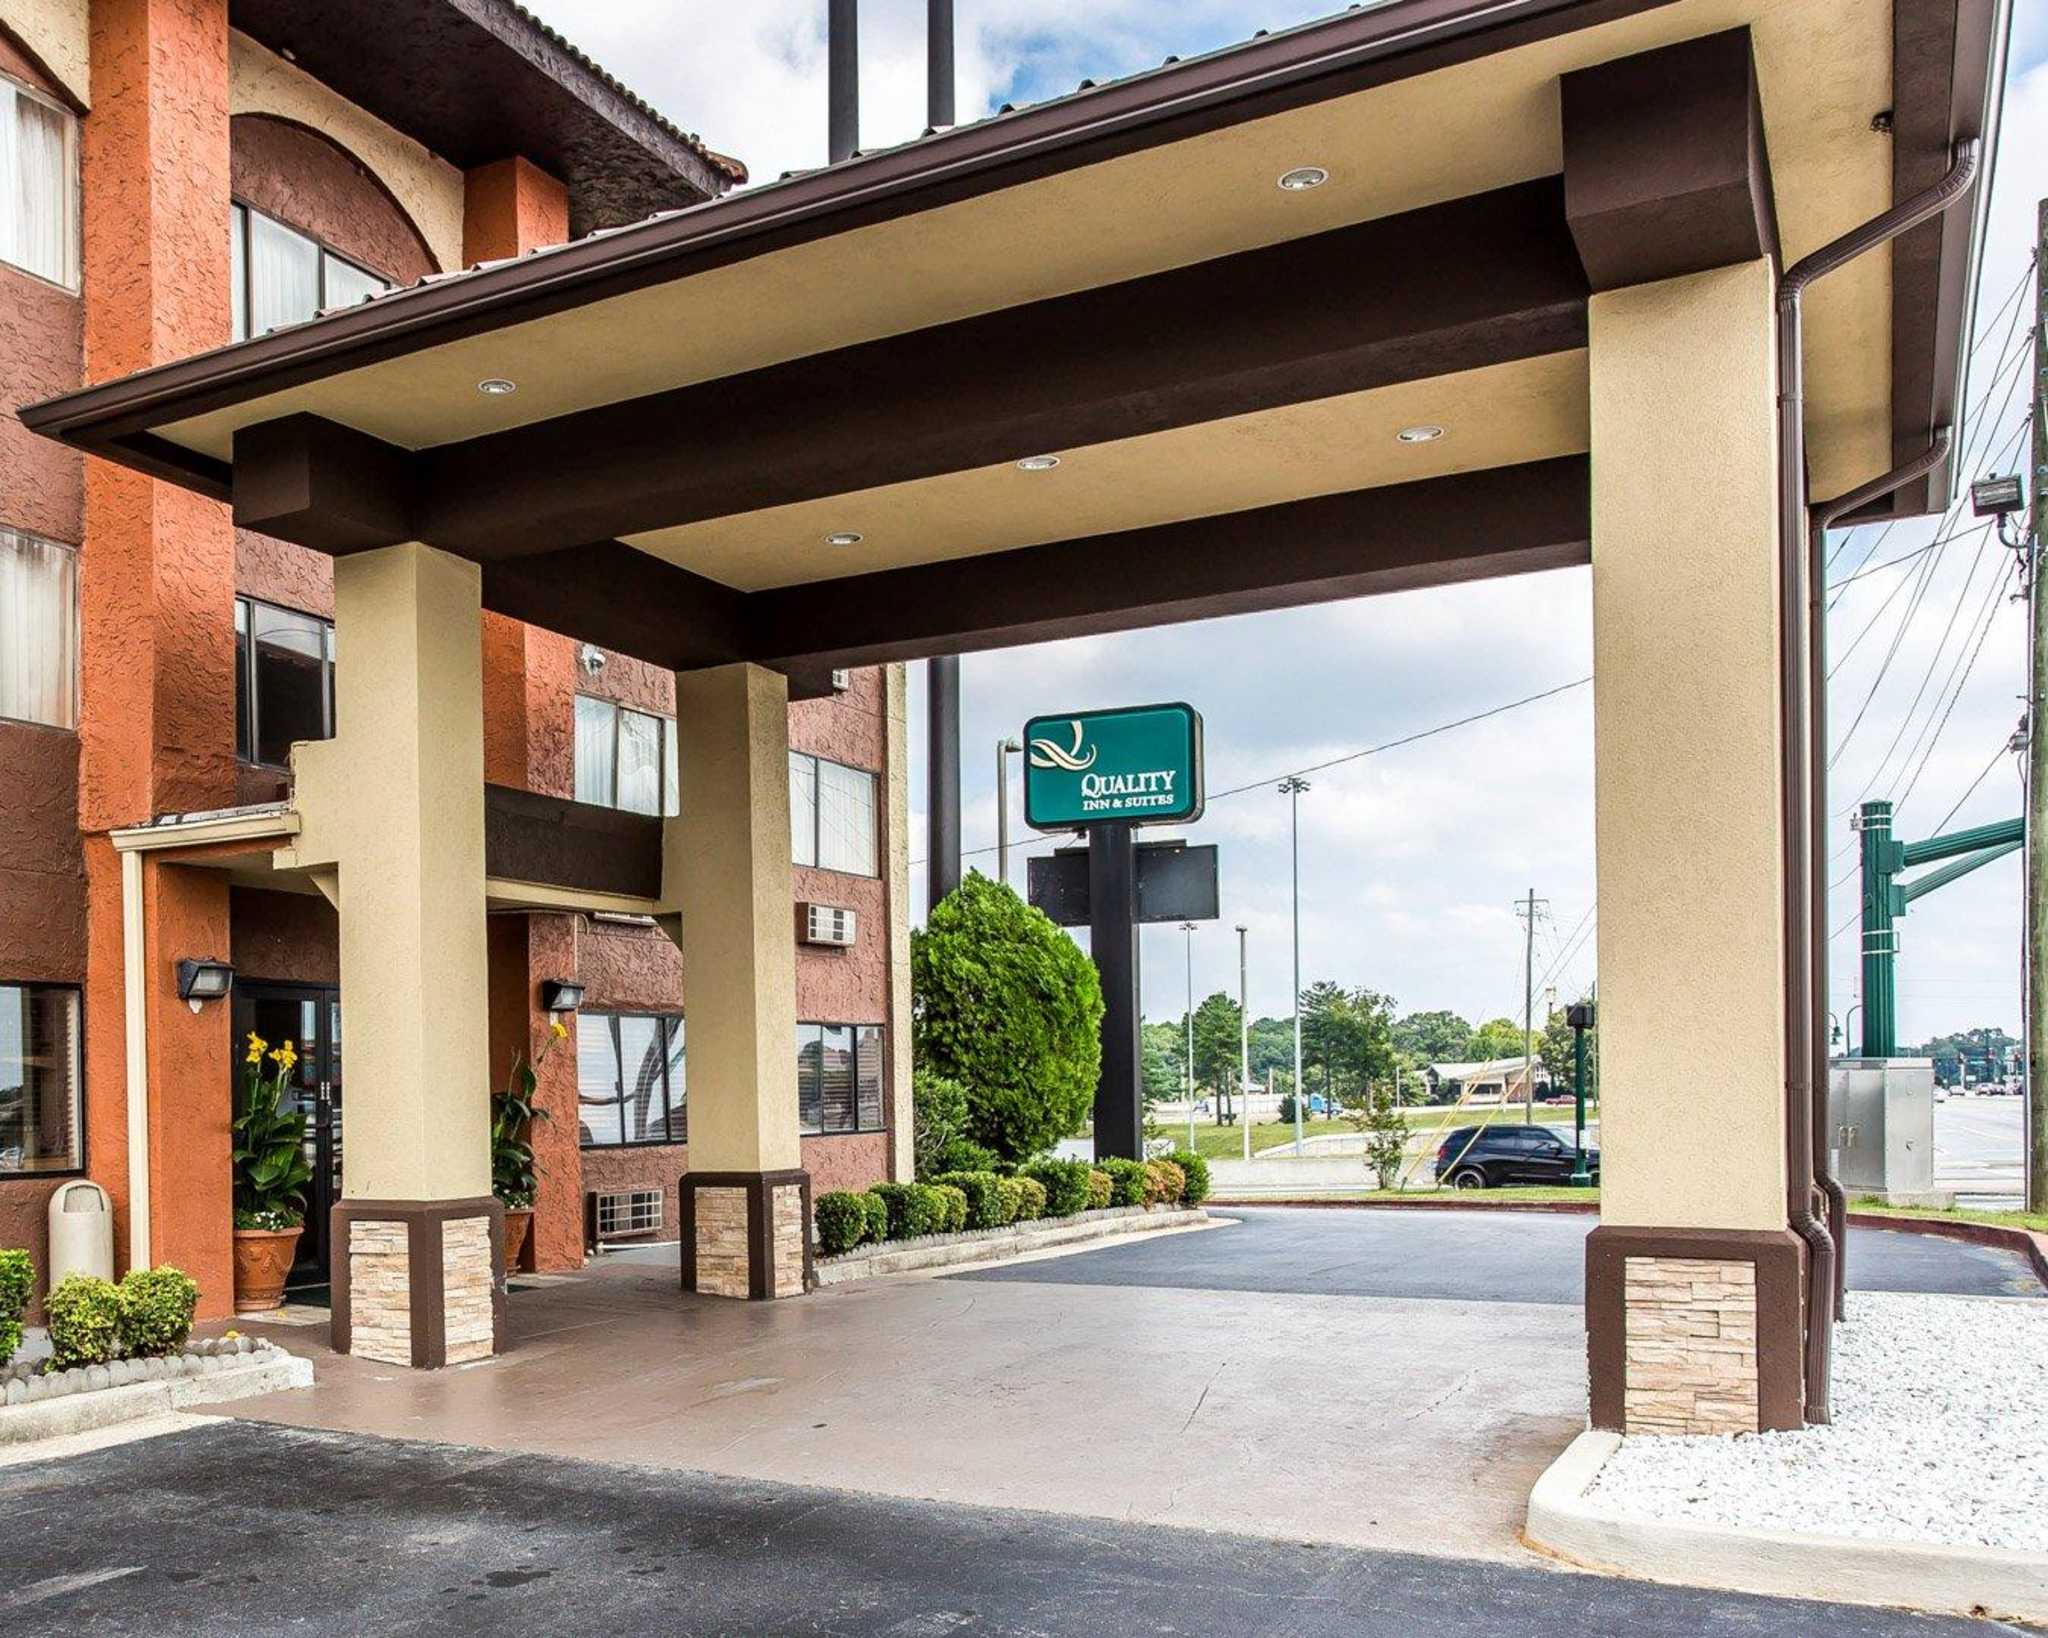 Quality Inn & Suites Southlake image 2